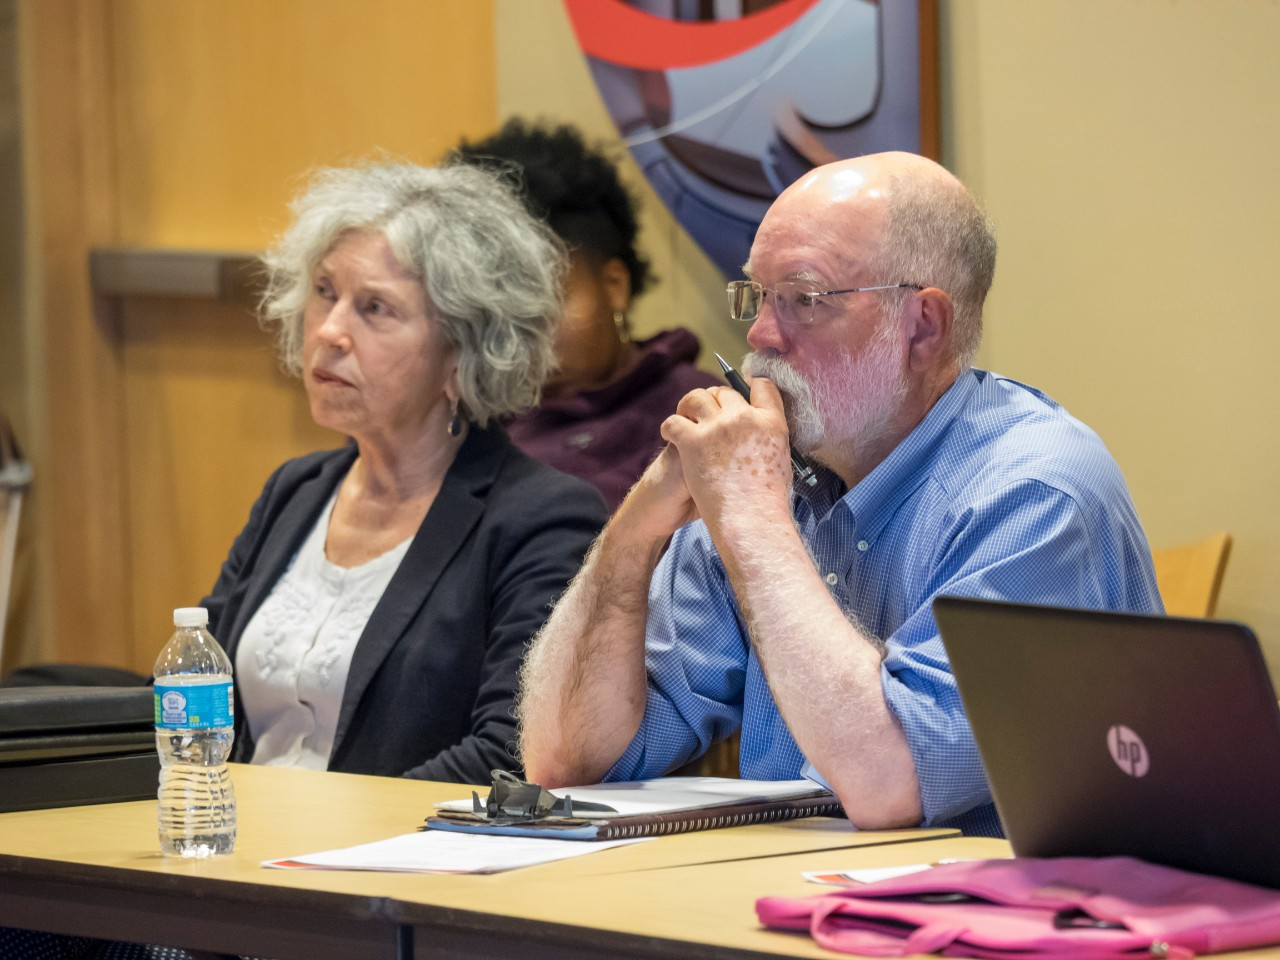 Two members of the Community Advisory Council listen attentively during a meeting.